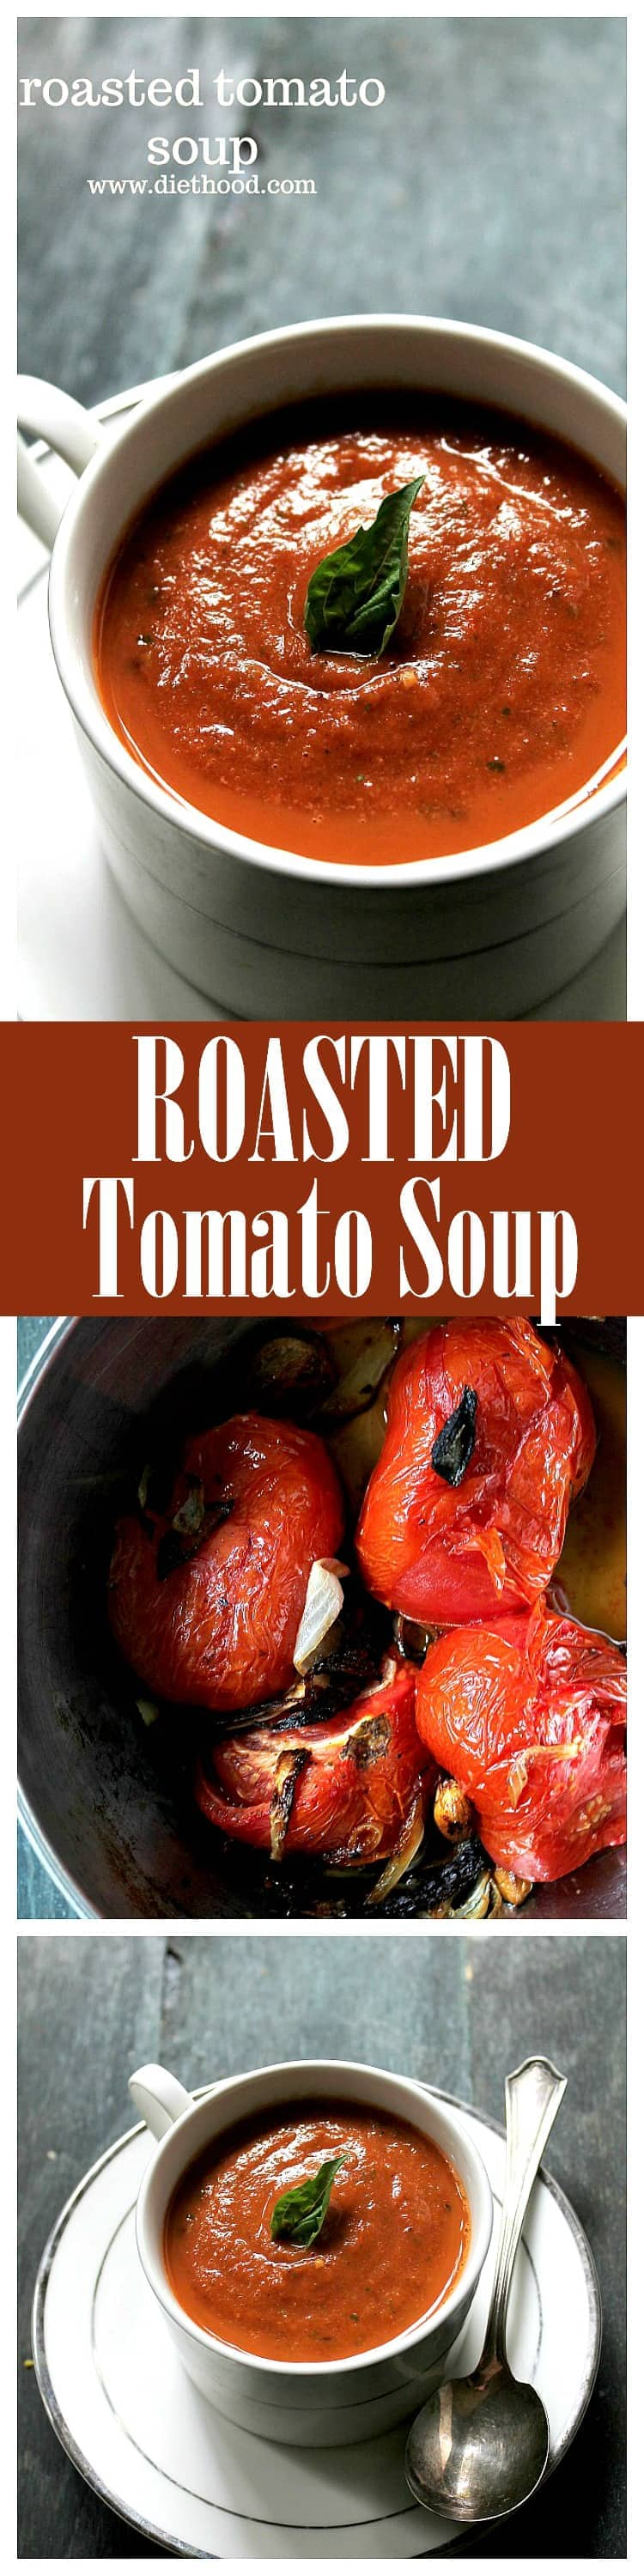 A delicious Roasted Tomato Soup made with garden fresh tomatoes, garlic, onions, and basil.